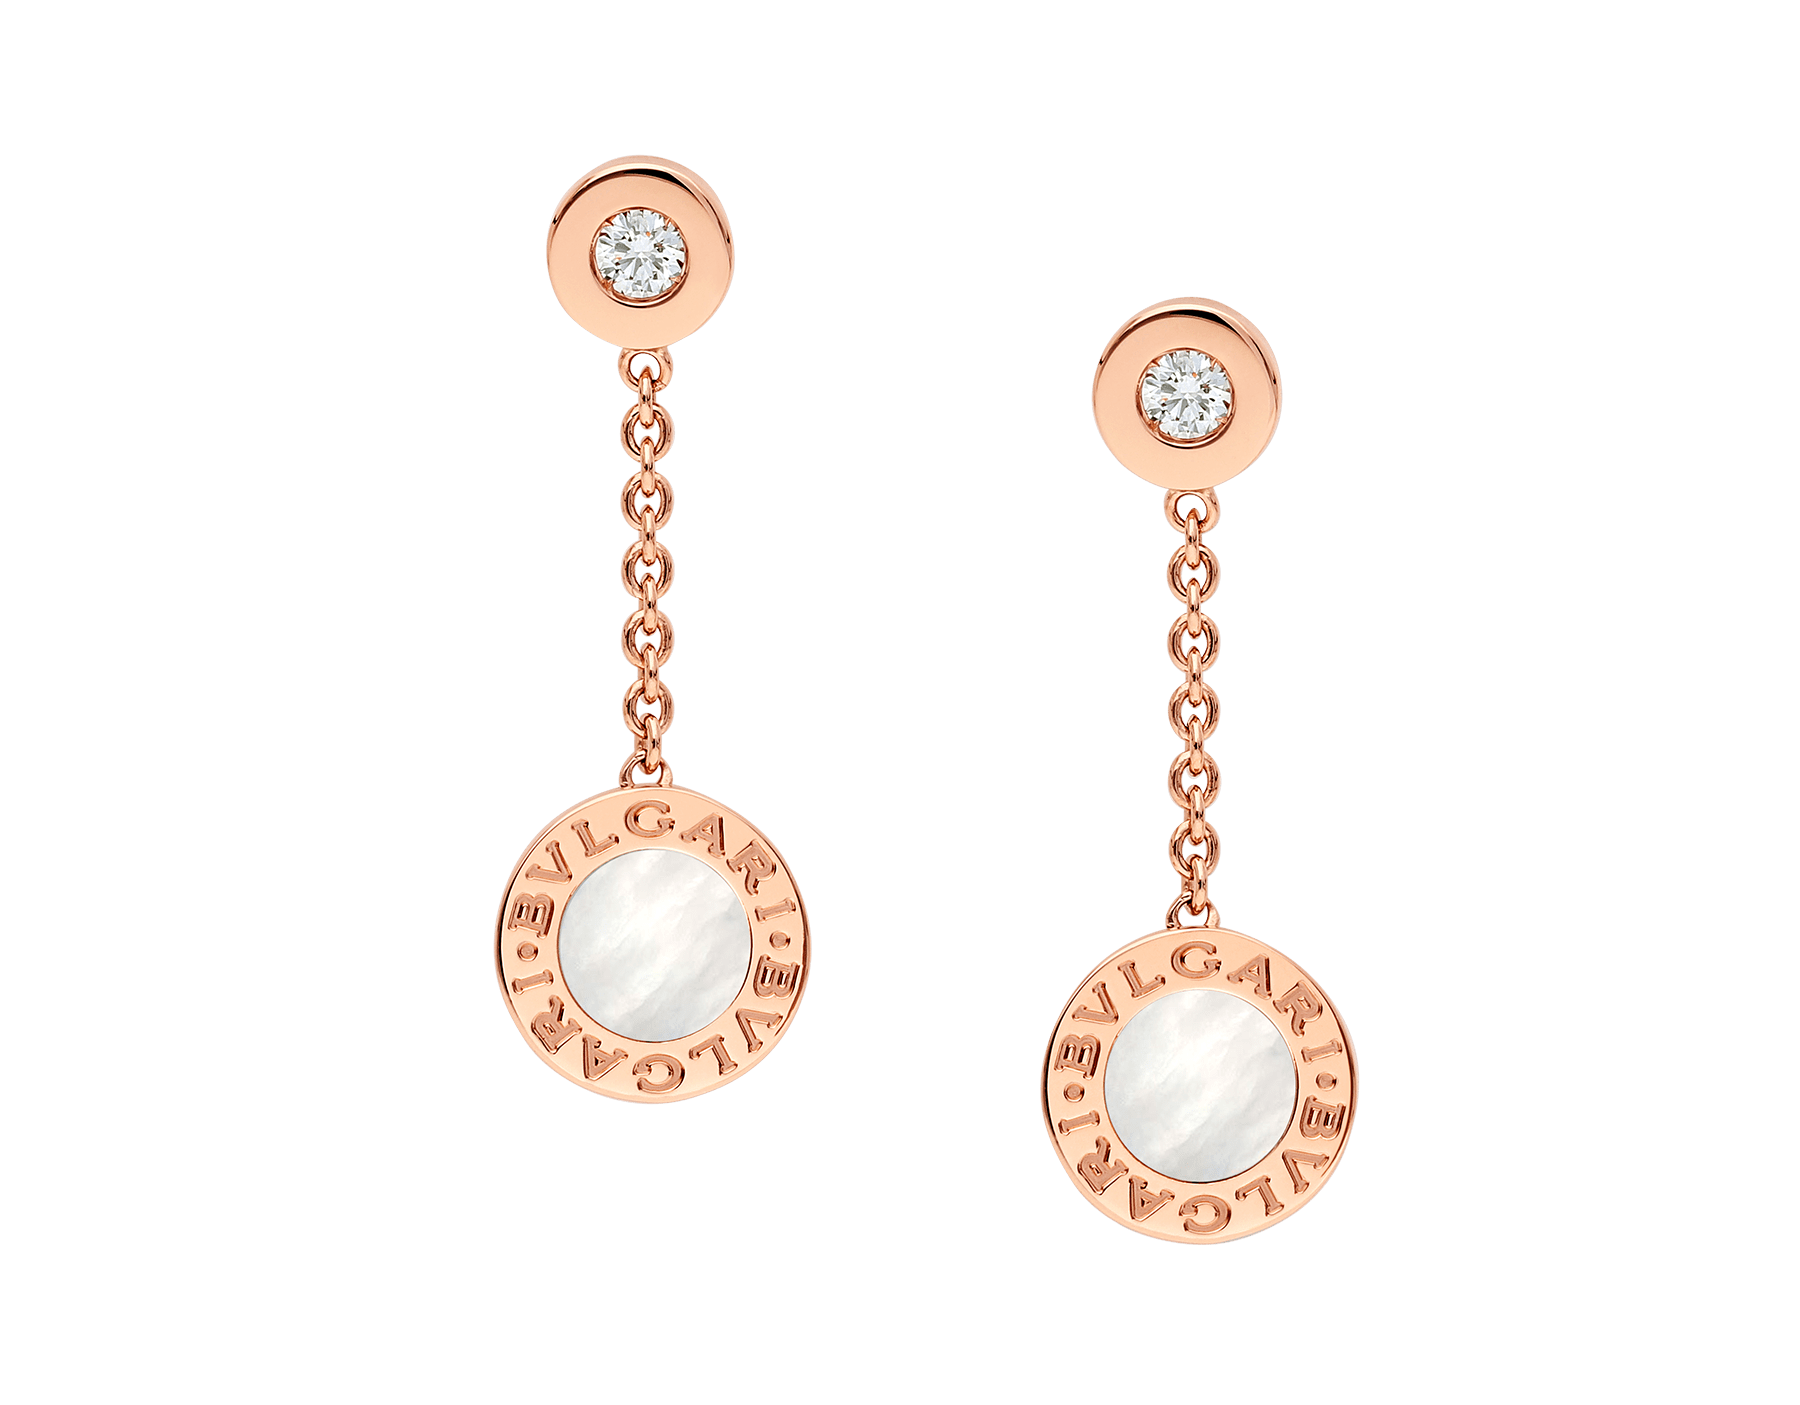 BVLGARI BVLGARI 18 kt rose gold earrings set with mother-of-pearl and diamonds 351086 image 1